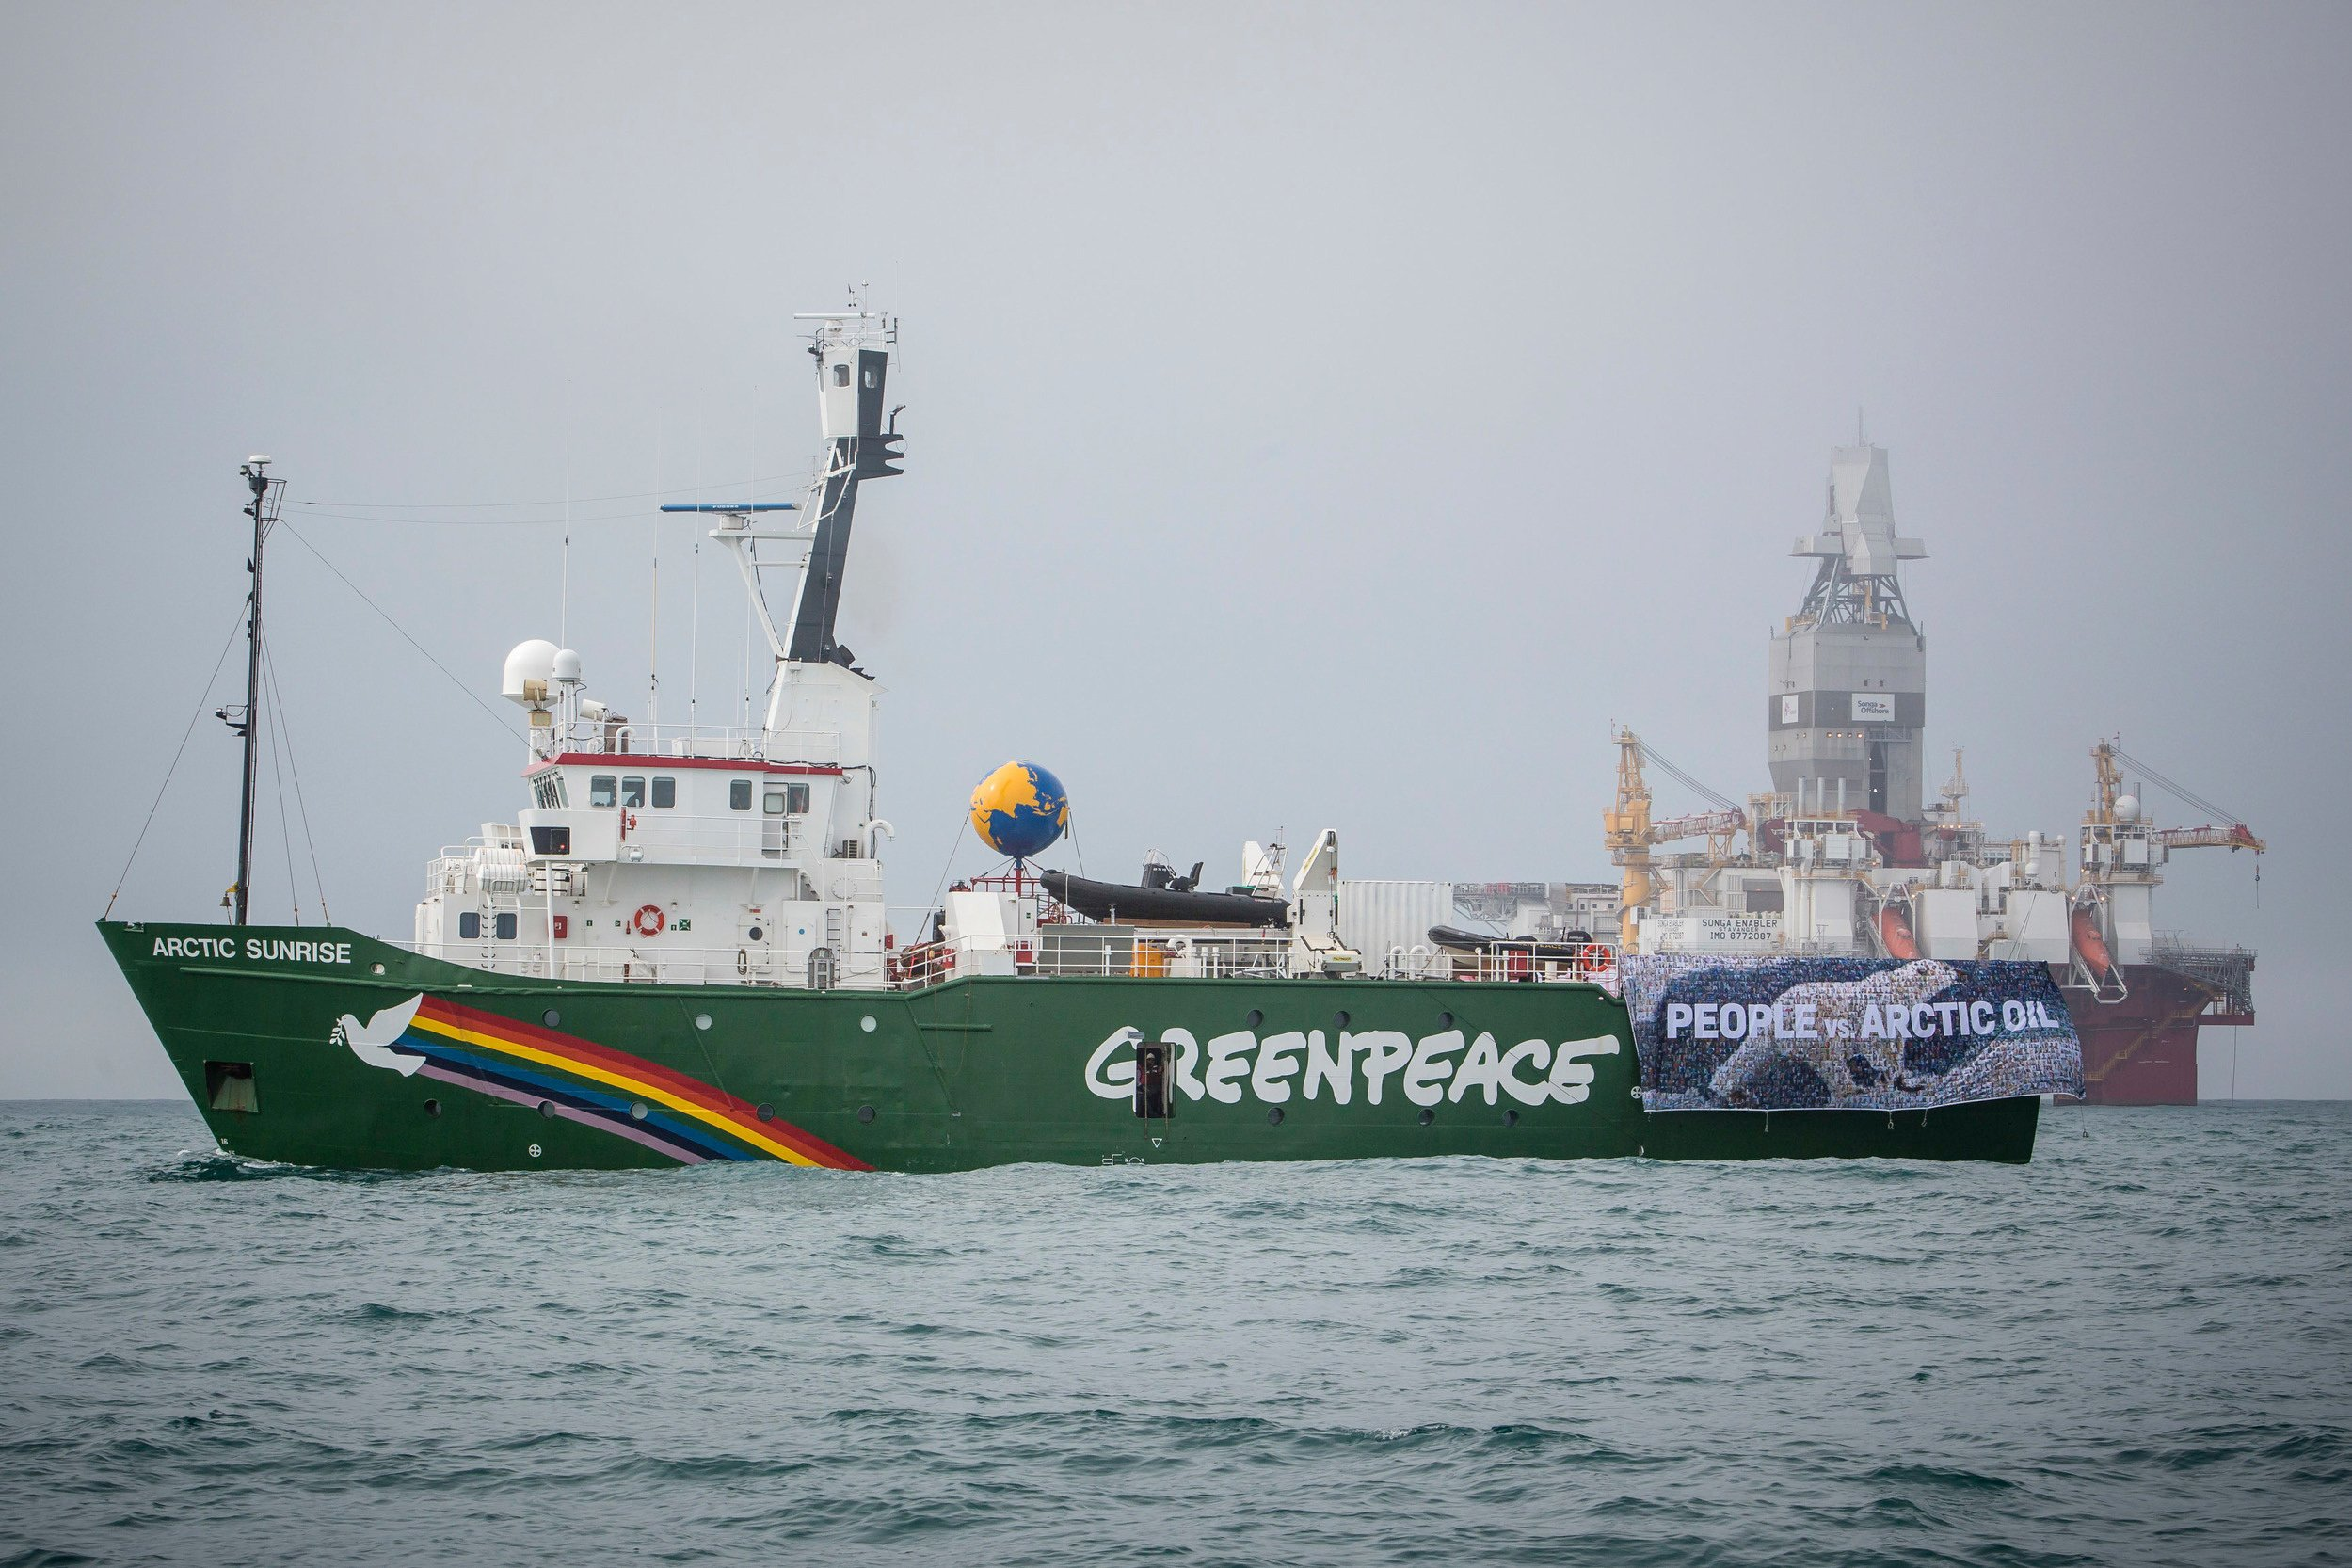 "Greenpeace's Arctic Sunrise vessel displays a banner reading ""People vs. Arctic Oil"" as it sails during a protest next to Statoil's Songa Enabler rig in the Barents sea, Norway, July 21, 2017. (Will Rose/ Greenpeace / Handout via Reuters)"